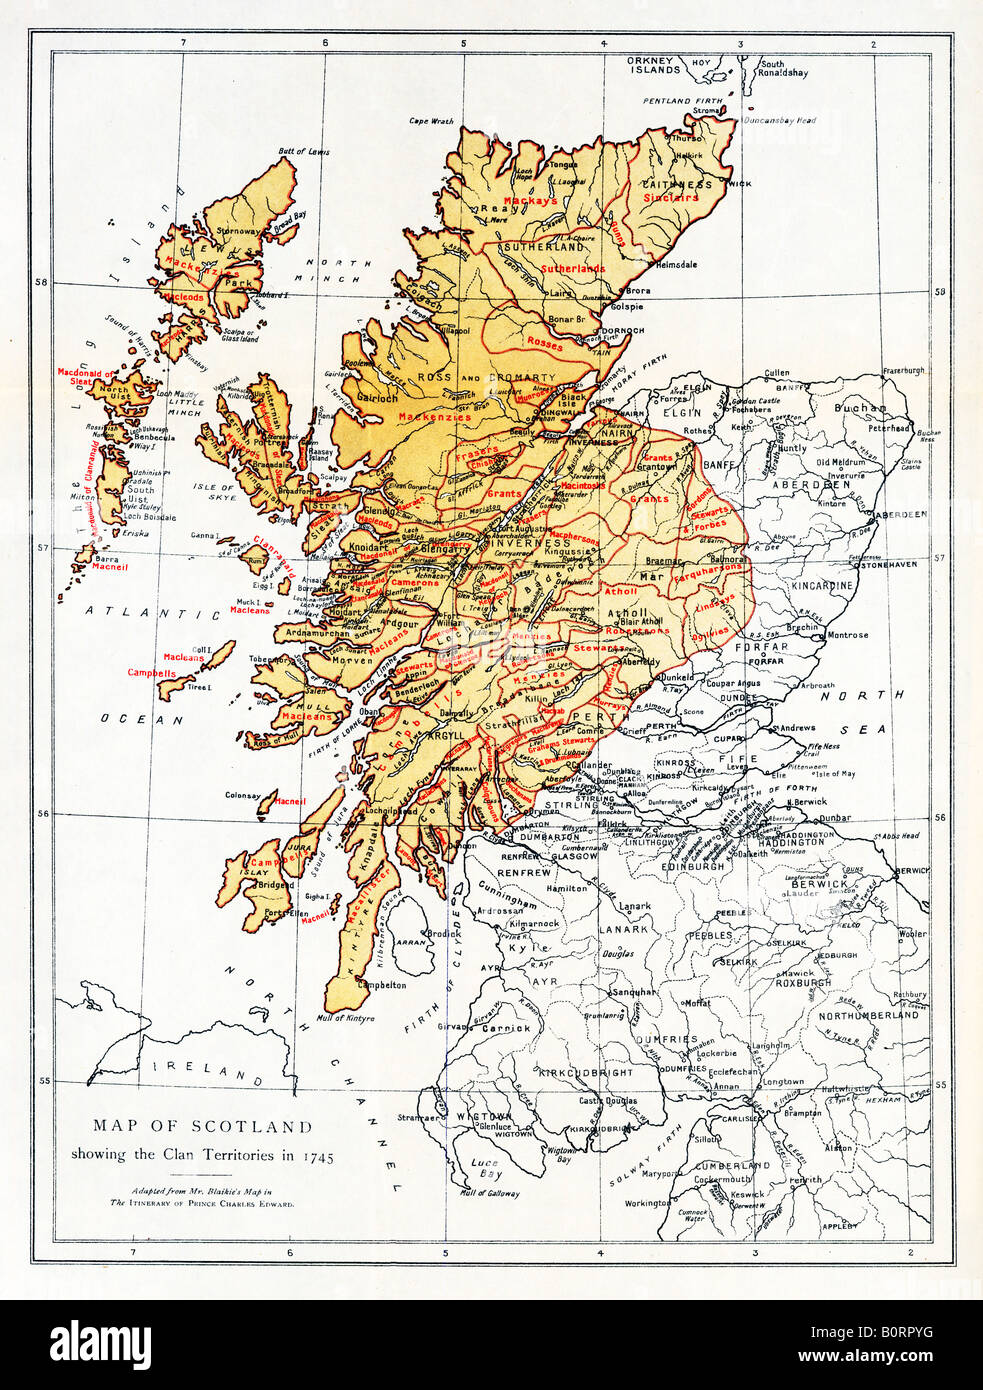 Scotland Clan Territories 1745 map of the Highland Clans at the rebellion  of Bonnie Prince Charlie